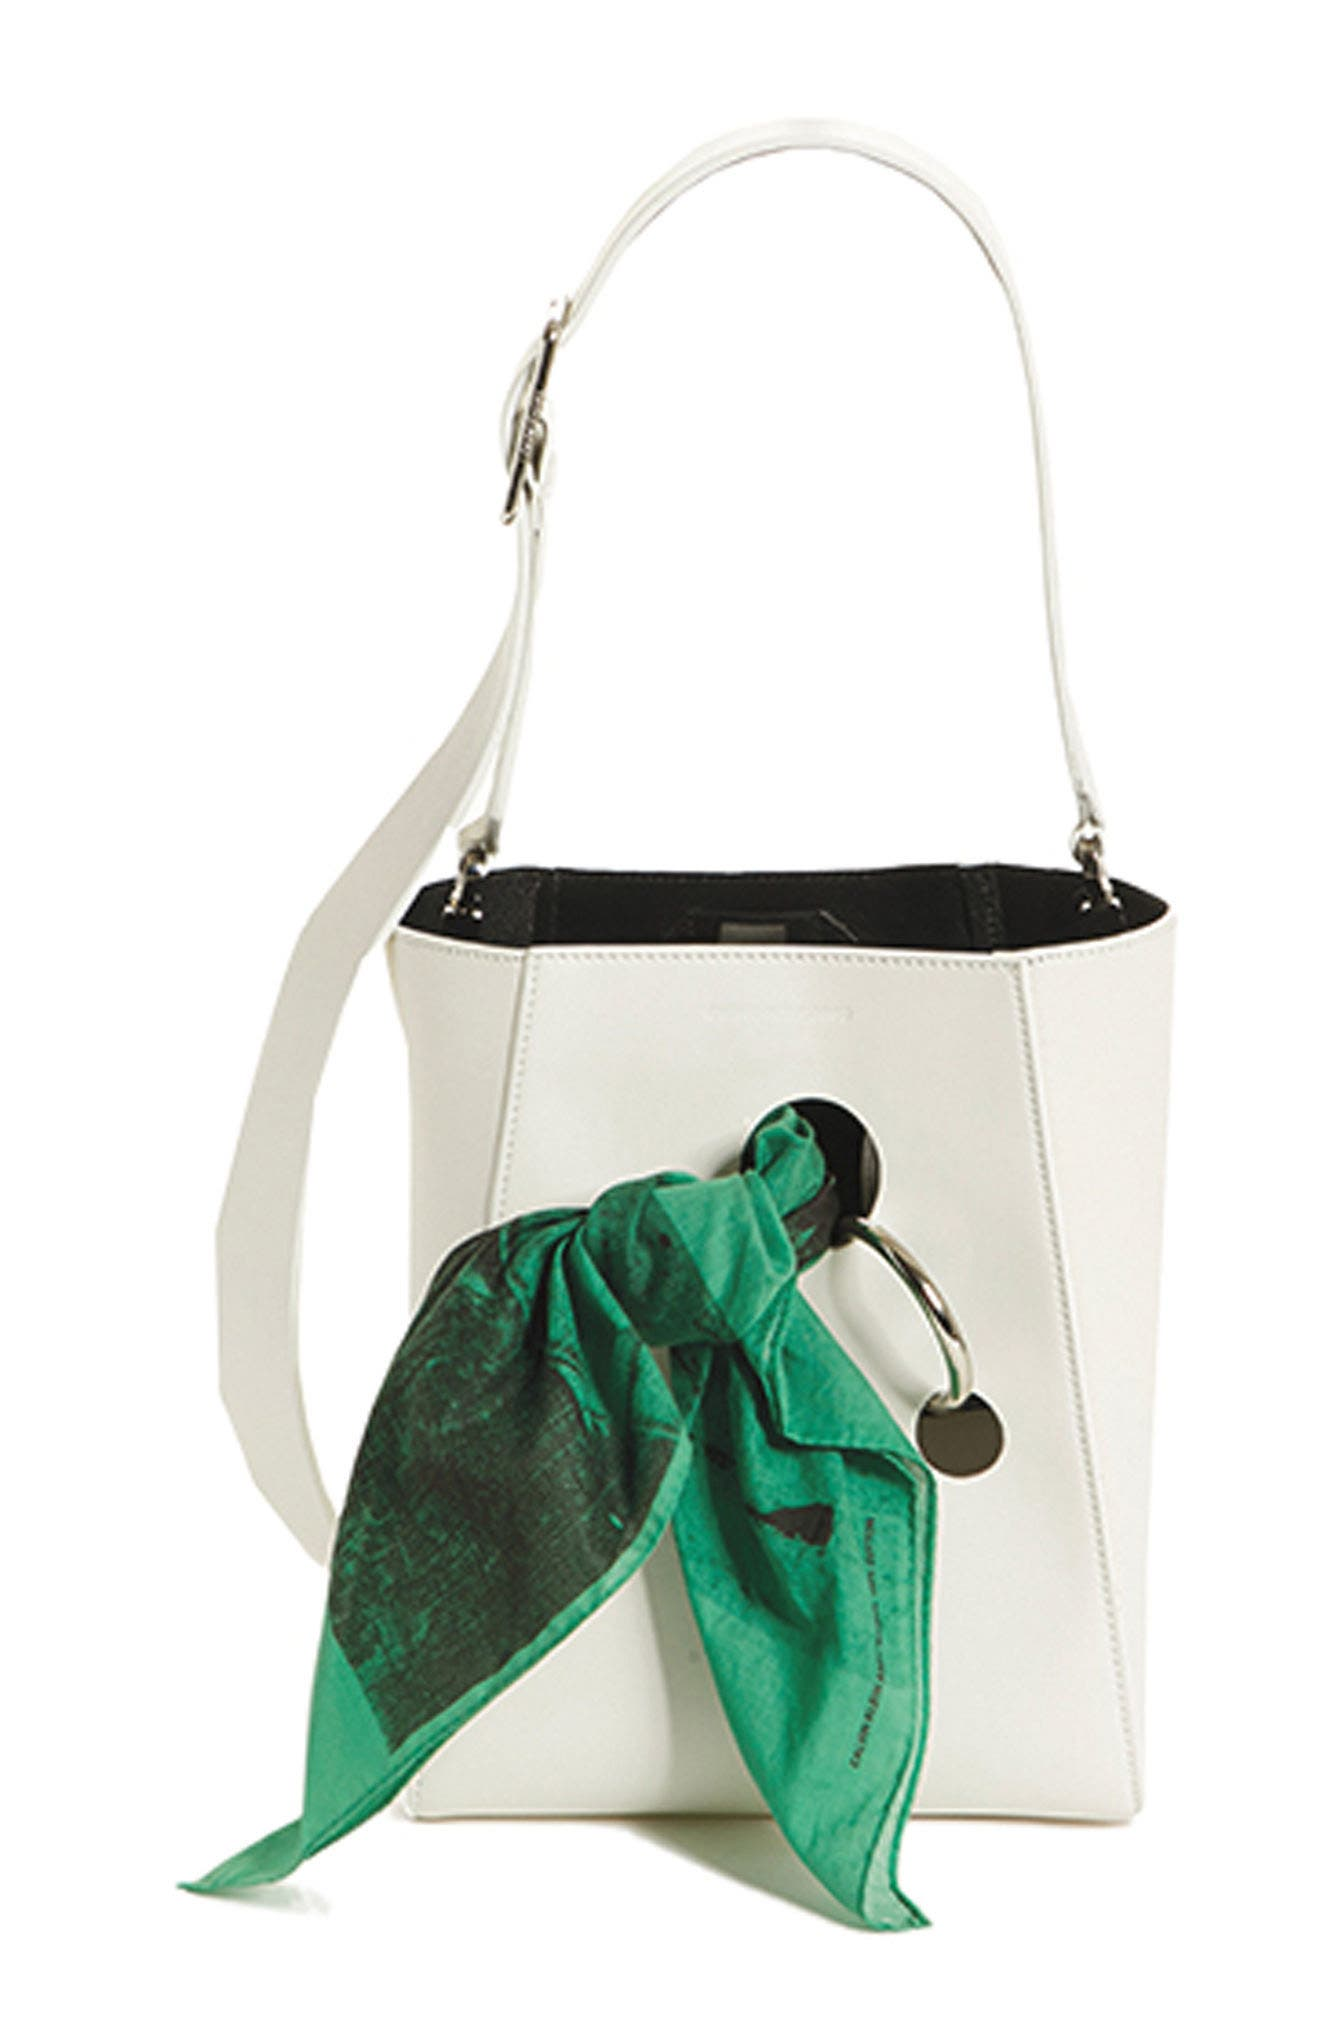 x Andy Warhol Foundation Small Bucket Bag with Bandana & Removable Pouch,                             Alternate thumbnail 7, color,                             001